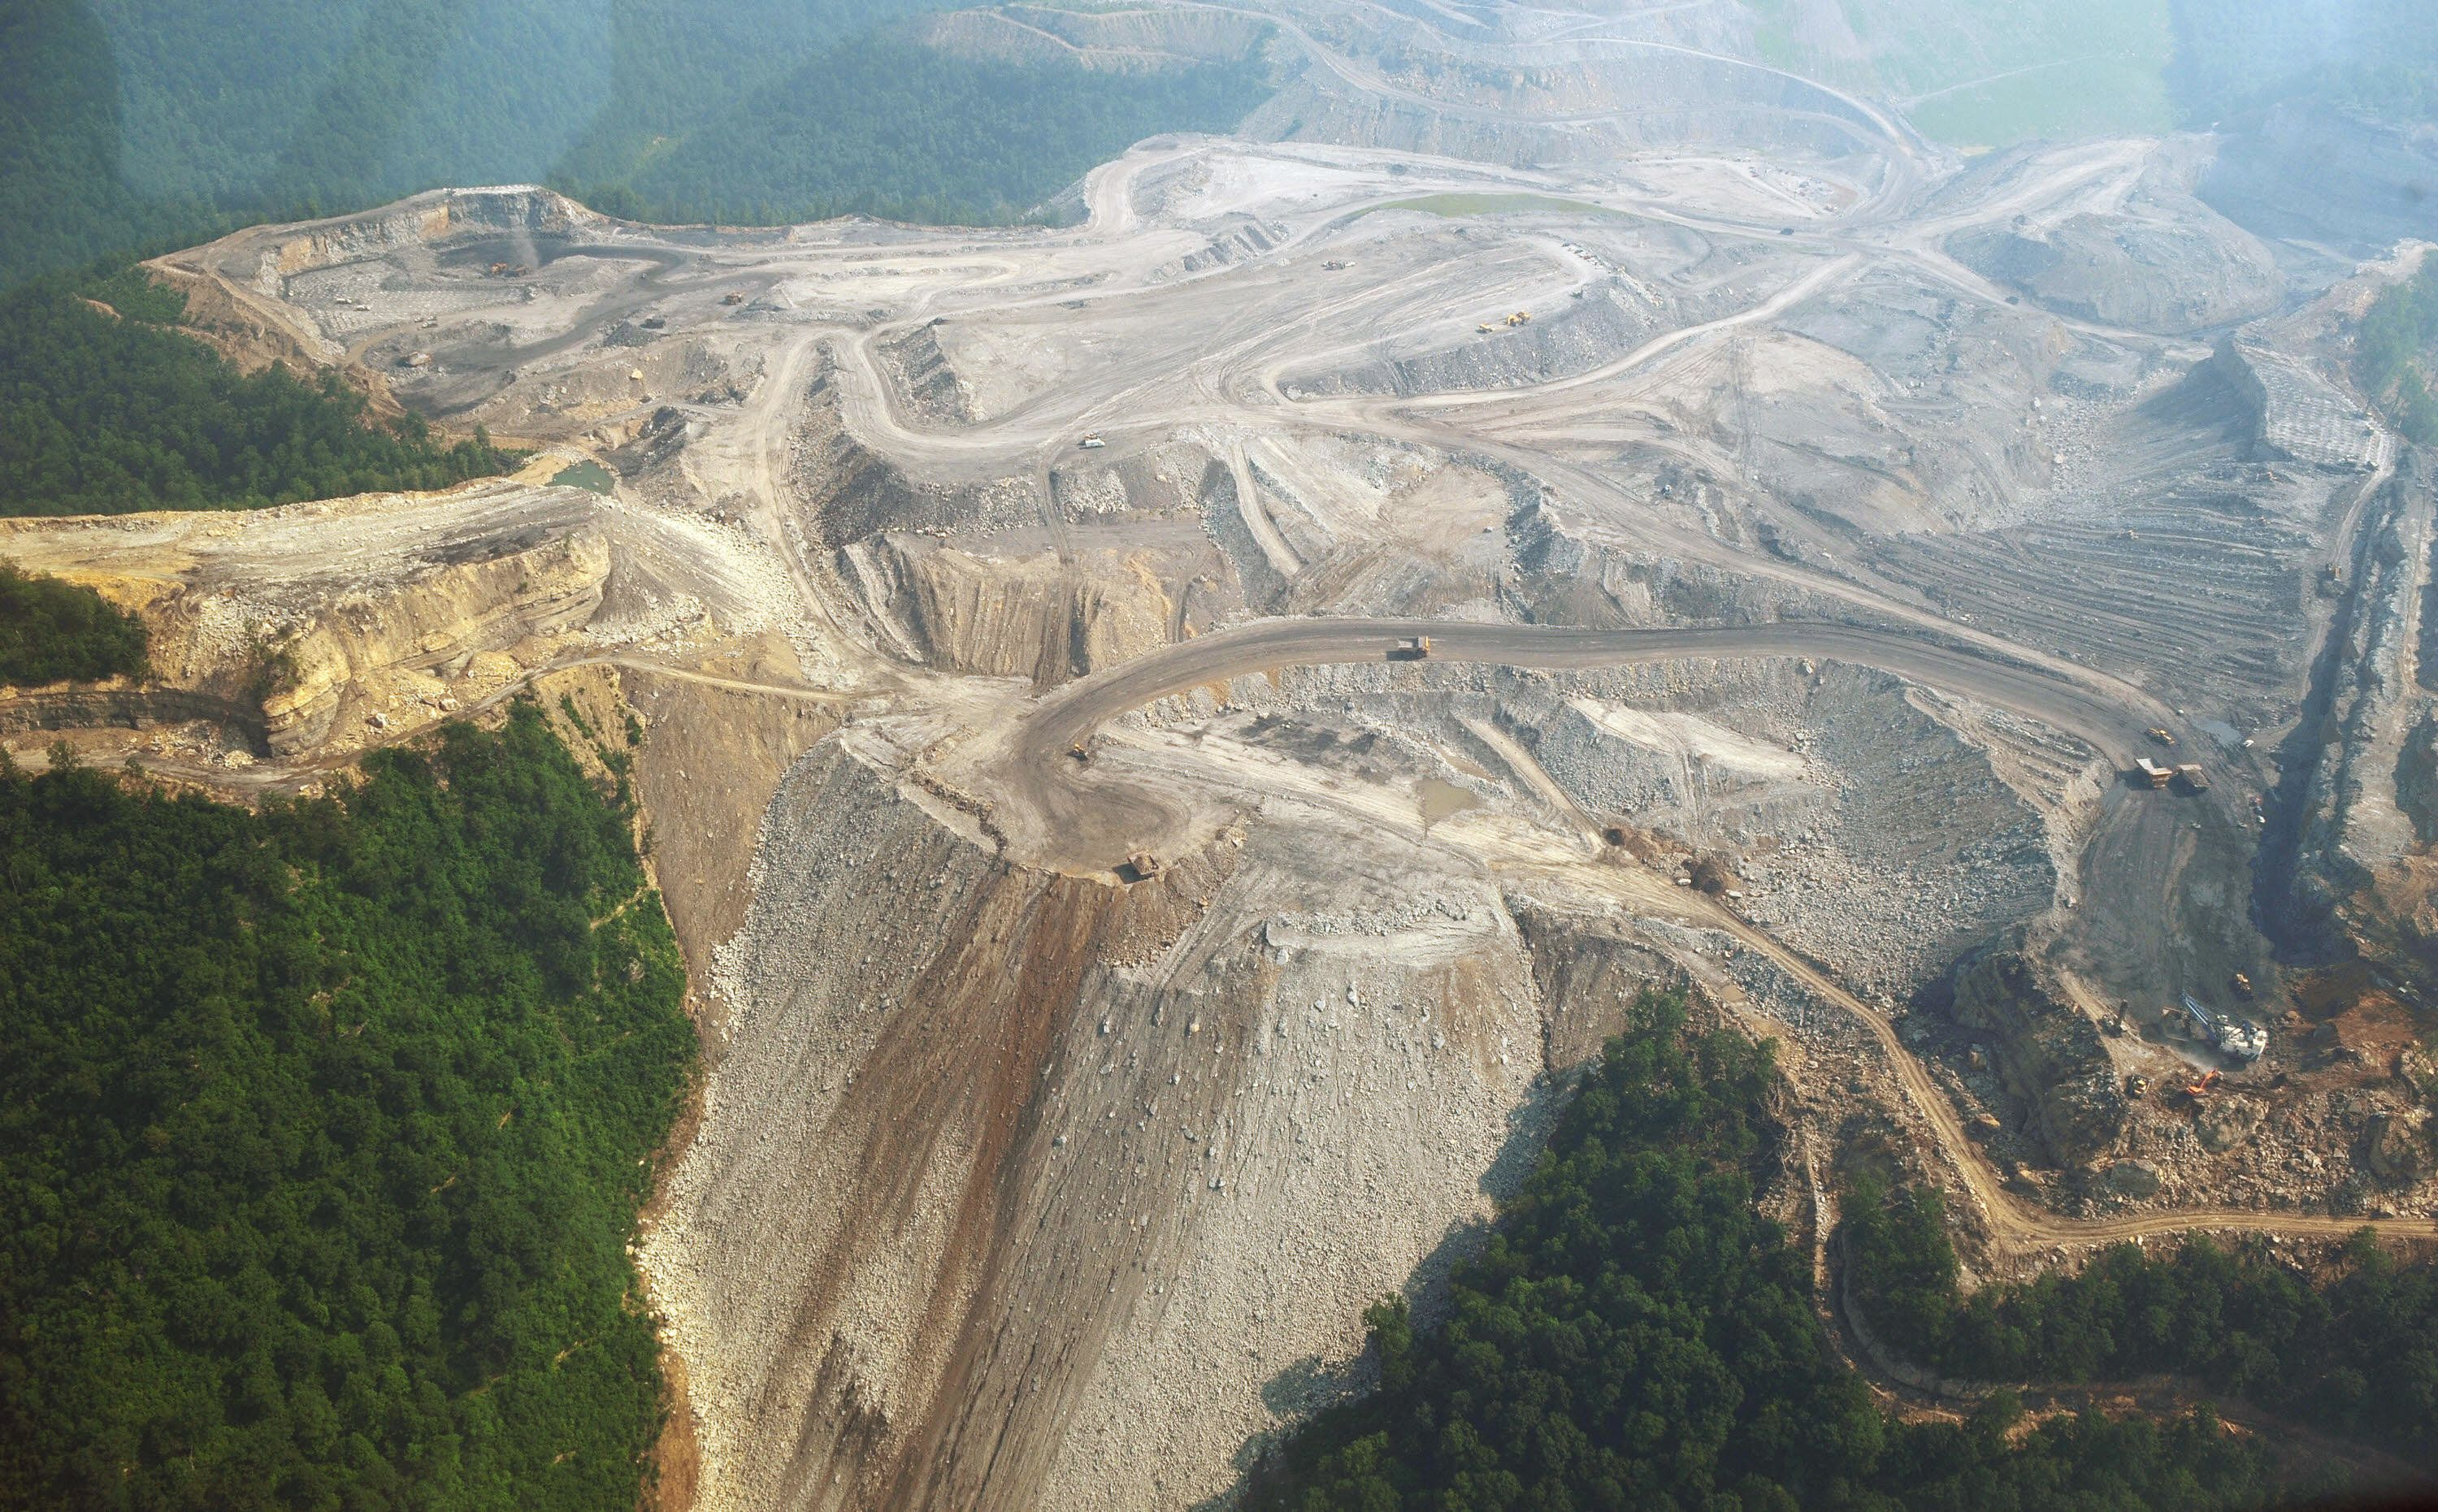 TO GO WITH AFP STORY by Virginie MONTET, USA-environment-energy-pollution A June 13, 2008 photo shows  a large mountaintop coal mining operation in West Virginia. Mountaintop removal mining (MTR), referred to in coal the industry as mountaintop mining/valley fills is surface mining involving extreme change to the summit or summit ridge of a mountain. It is used mainly with coal mining in the Appalachian Mountains, in the eastern US. The process involves using explosives to remove up to 1,000 vertical feet (304.8 meters) of rock to get to the coal. The debris is often moved into the adjacent river valleys, called a valley fill.    AFP PHOTO/Mandel NGAN (Photo credit should read MANDEL NGAN/AFP/Getty Images)